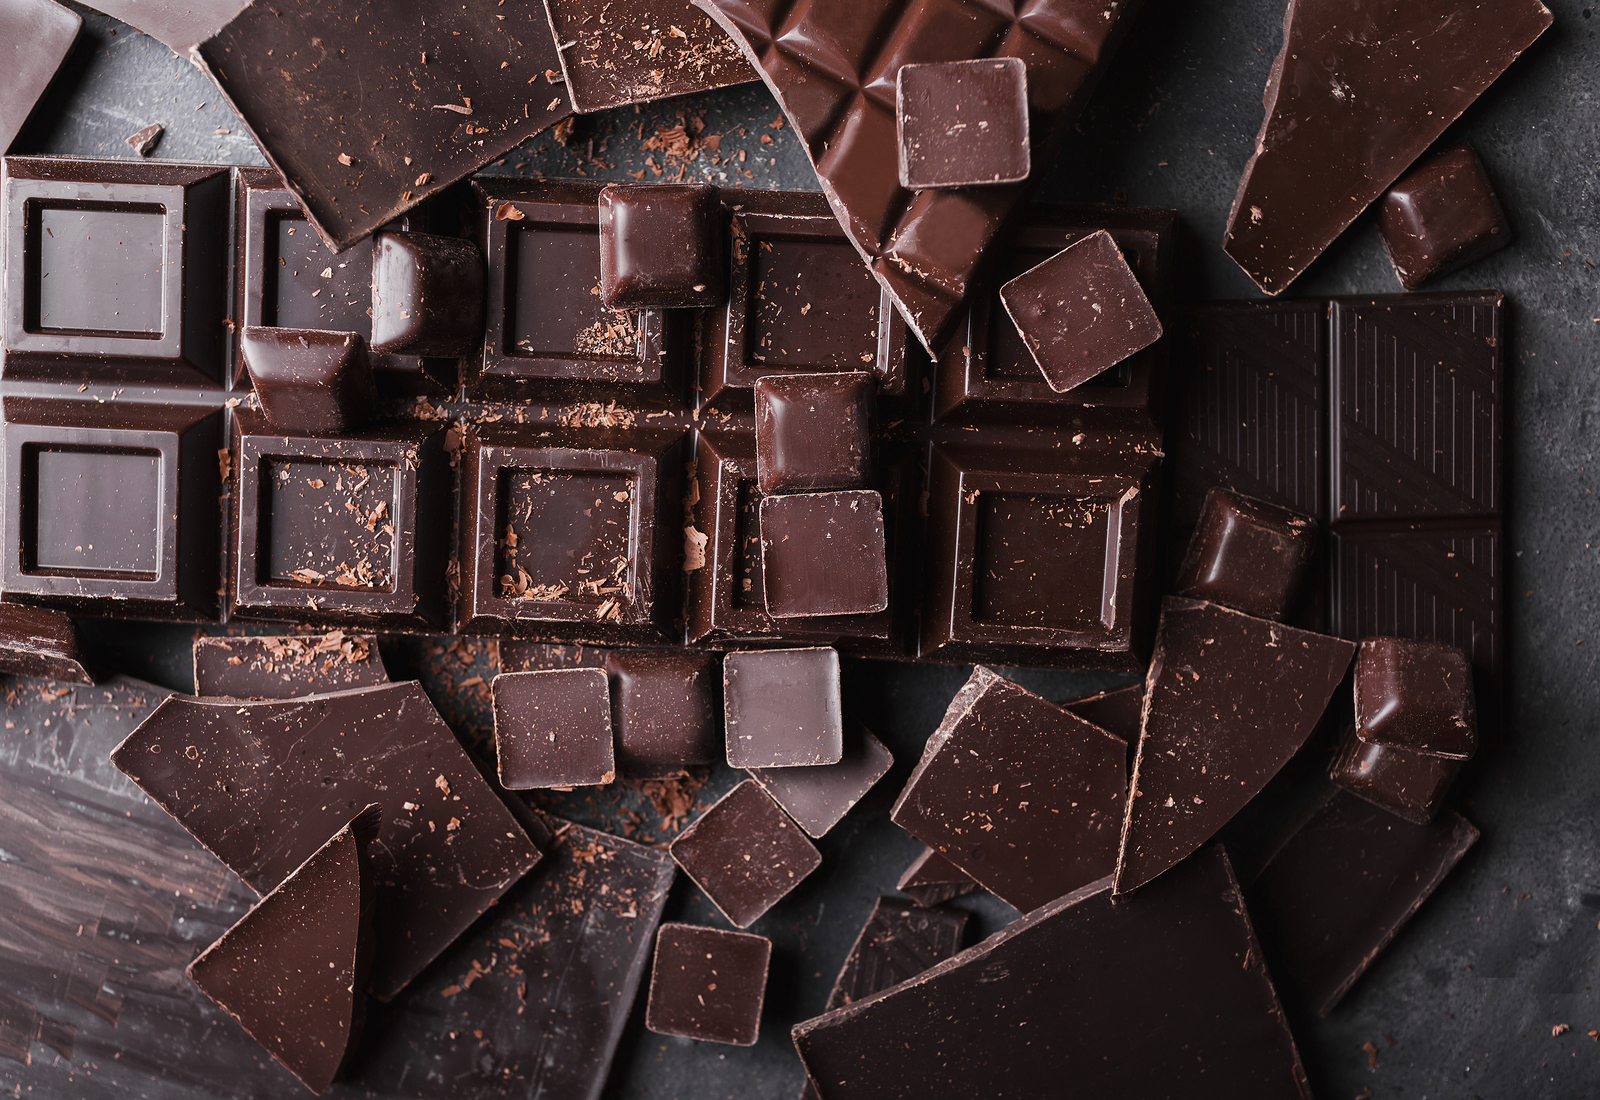 Healthy or Harmful? The Health Benefits of Chocolate